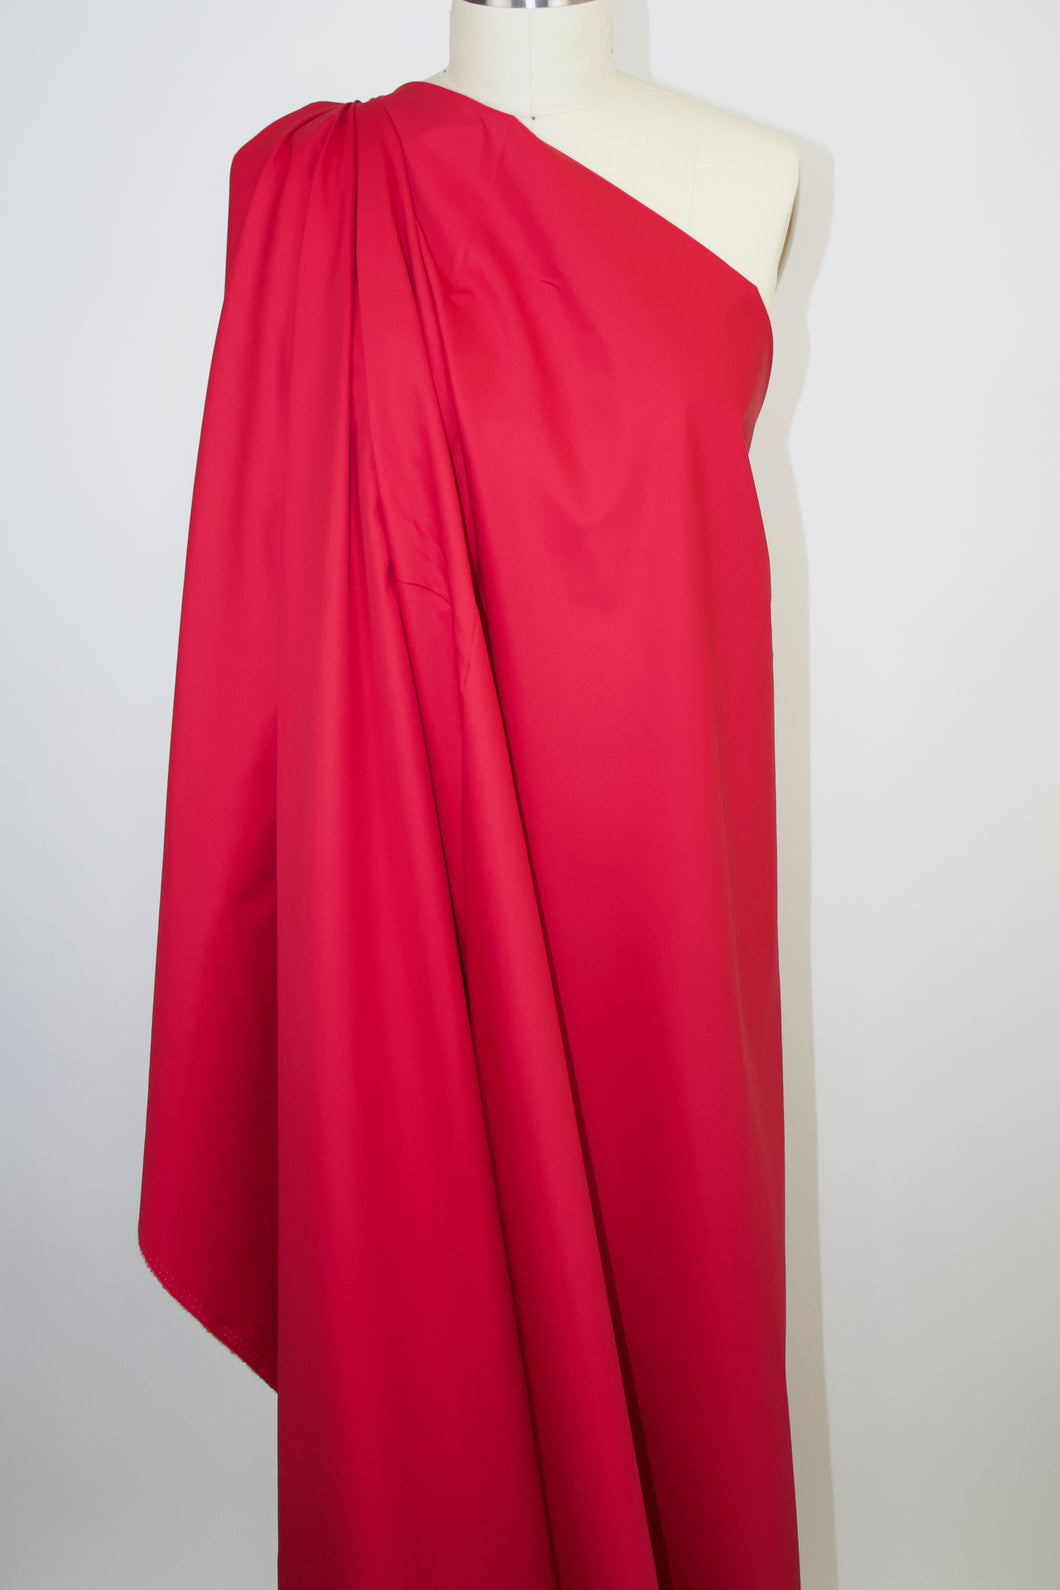 Lightweight Italian Cotton Twill - Lipstick Red